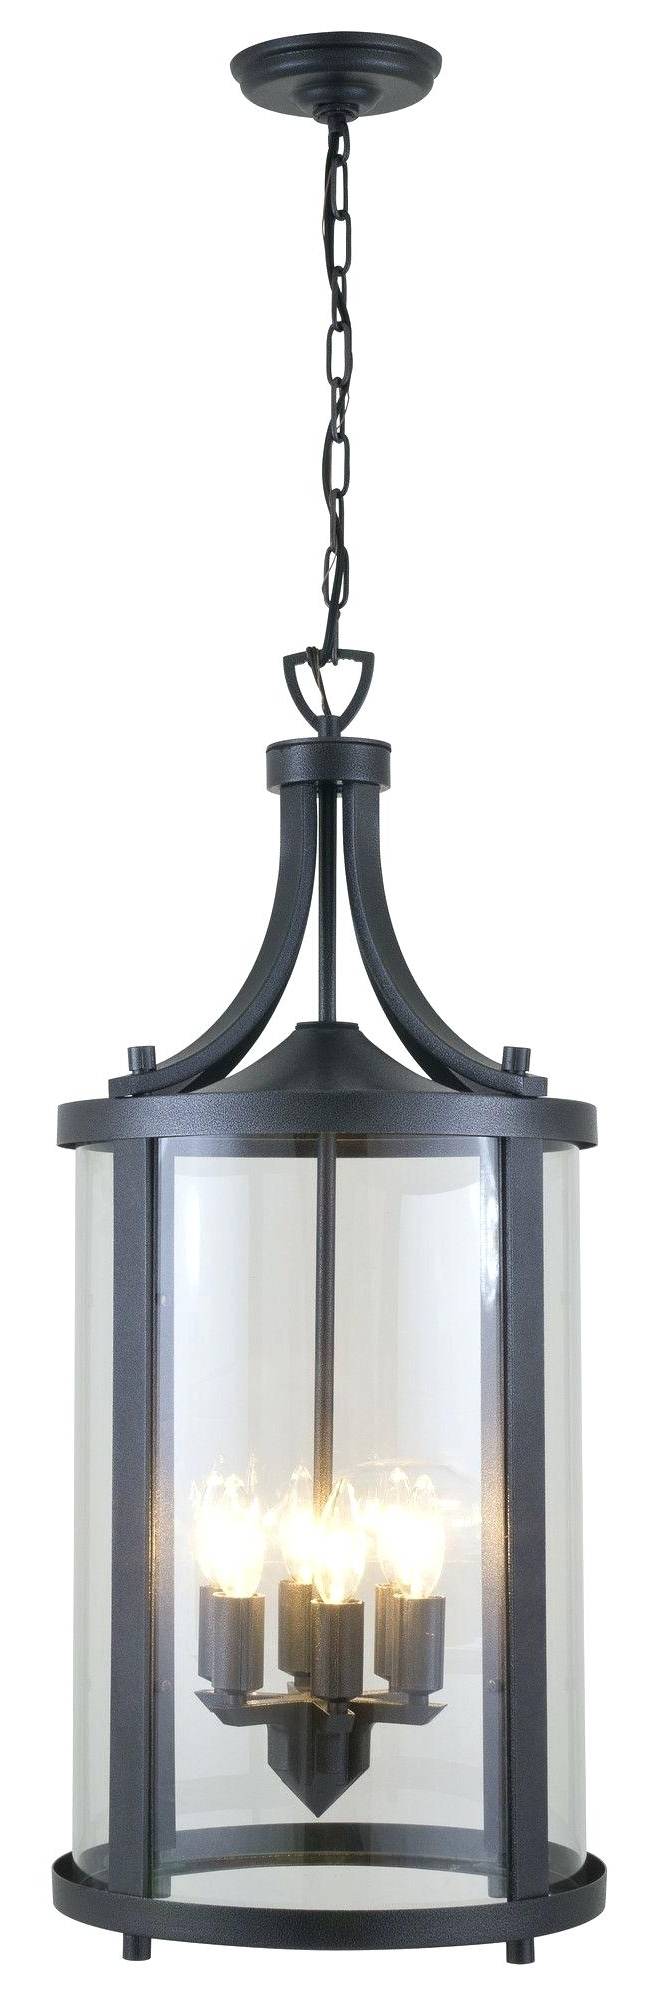 Recent Outdoor Hanging Lanterns Candle Uk For Patio – Biophilessurf Intended For Solar Powered Outdoor Hanging Lanterns (Gallery 12 of 20)